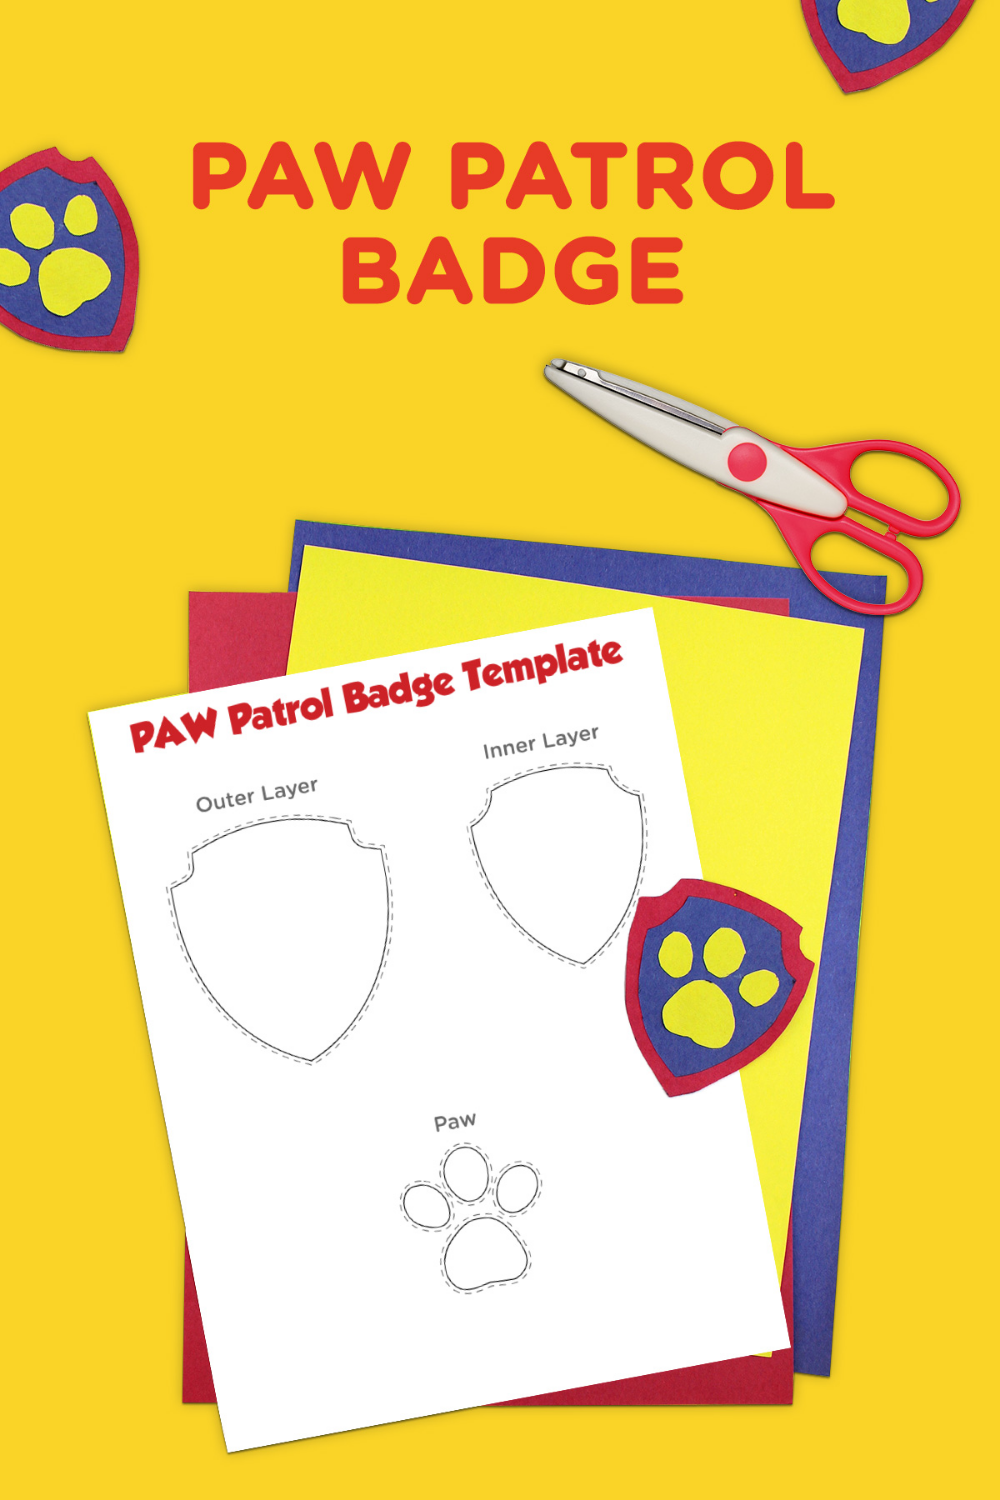 PAW Patrol Printable Badge Template - Paw patrol badge, Paw patrol birthday party, Paw patrol birthday, Paw patrol printables, Paw patrol gifts, Paw patrol - If your little pup is obsessed with PAW Patrol and all that the PAW Patrol badge stands for, make them a PAWsome badge of their very own! Just trace, cut,